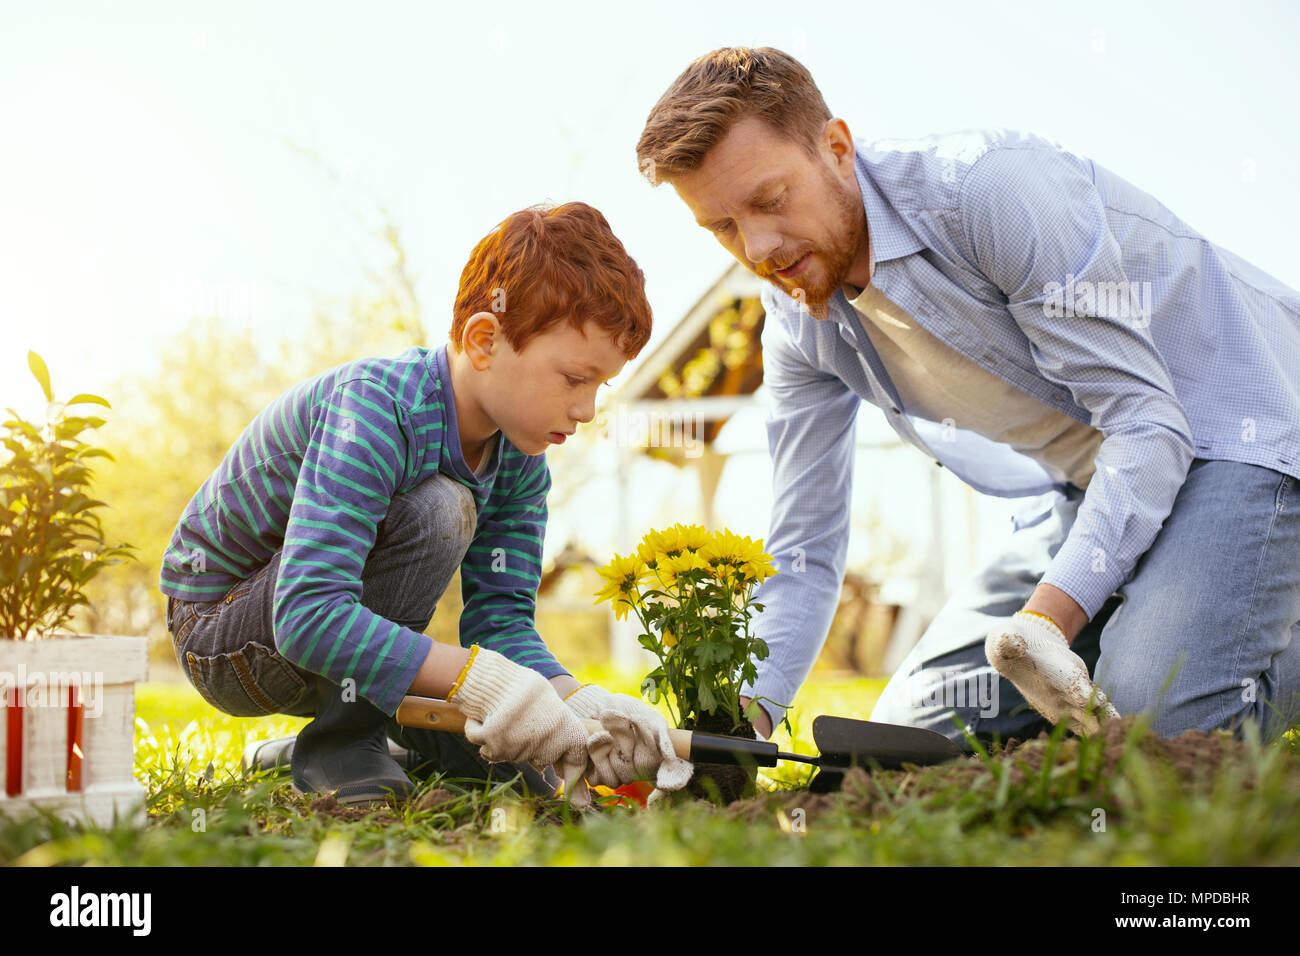 Delighted nice boy helping his father - Stock Image